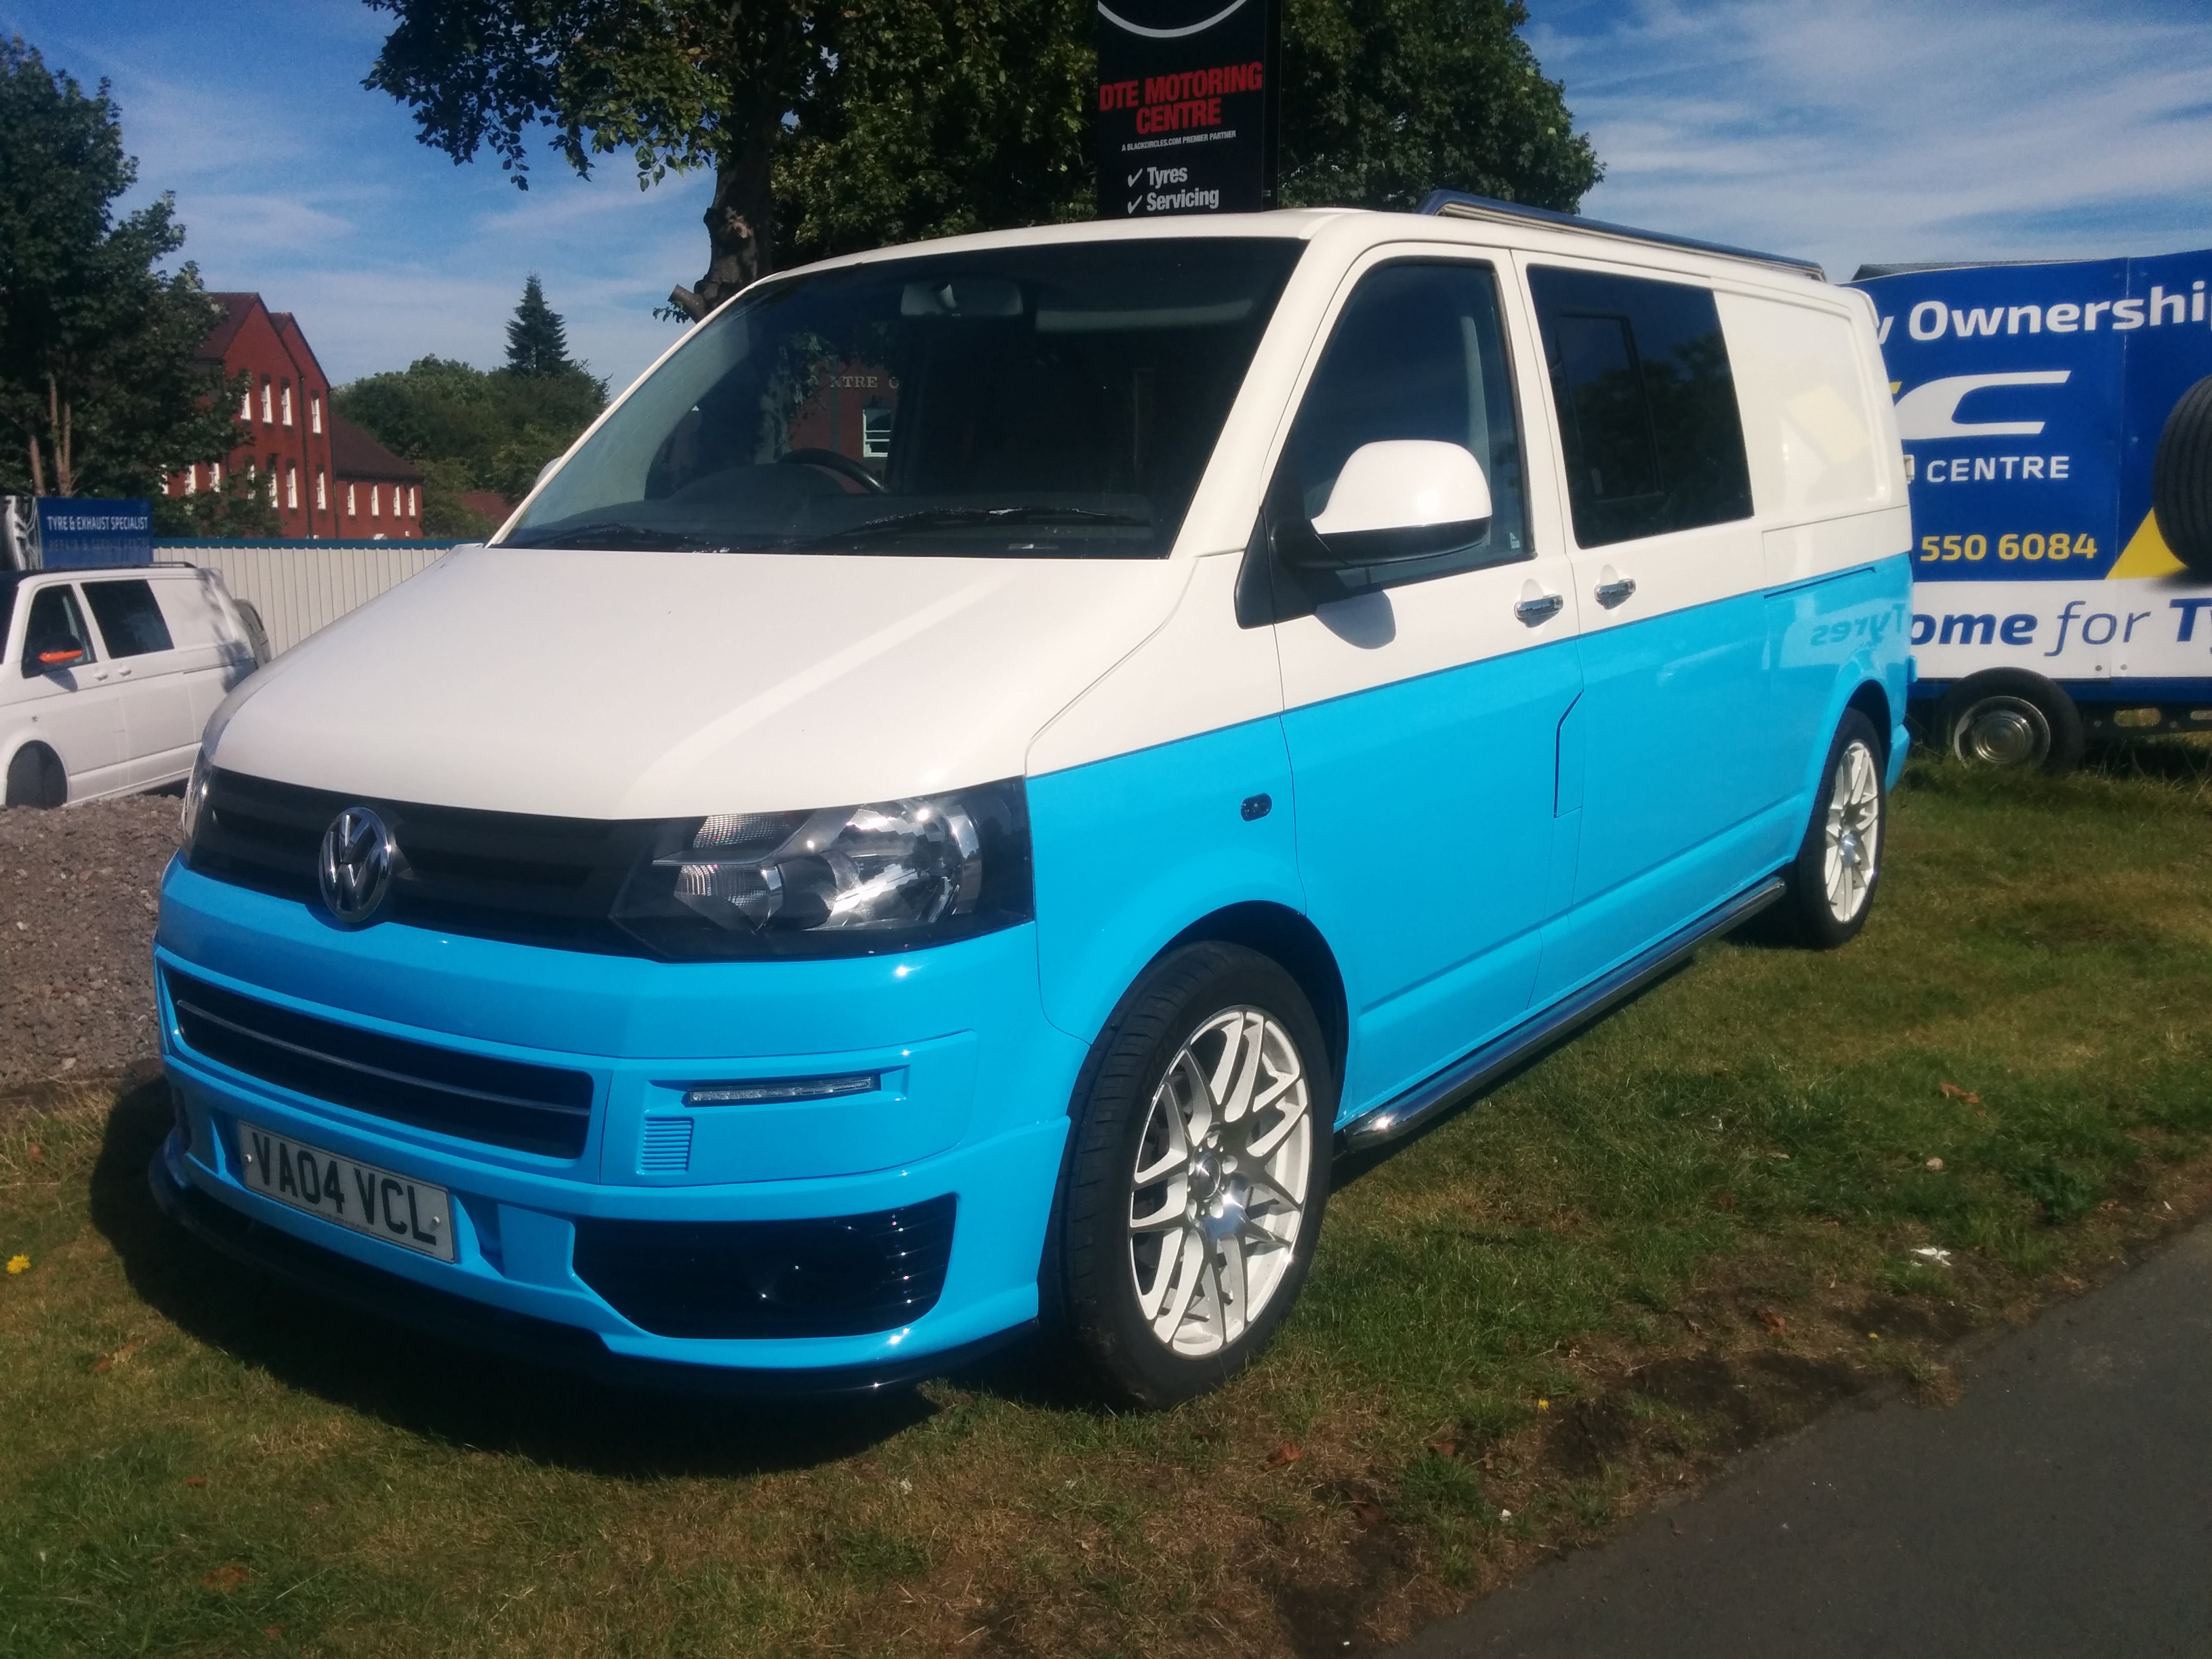 for sale volkswagen transporter t5 van white and blue. Black Bedroom Furniture Sets. Home Design Ideas